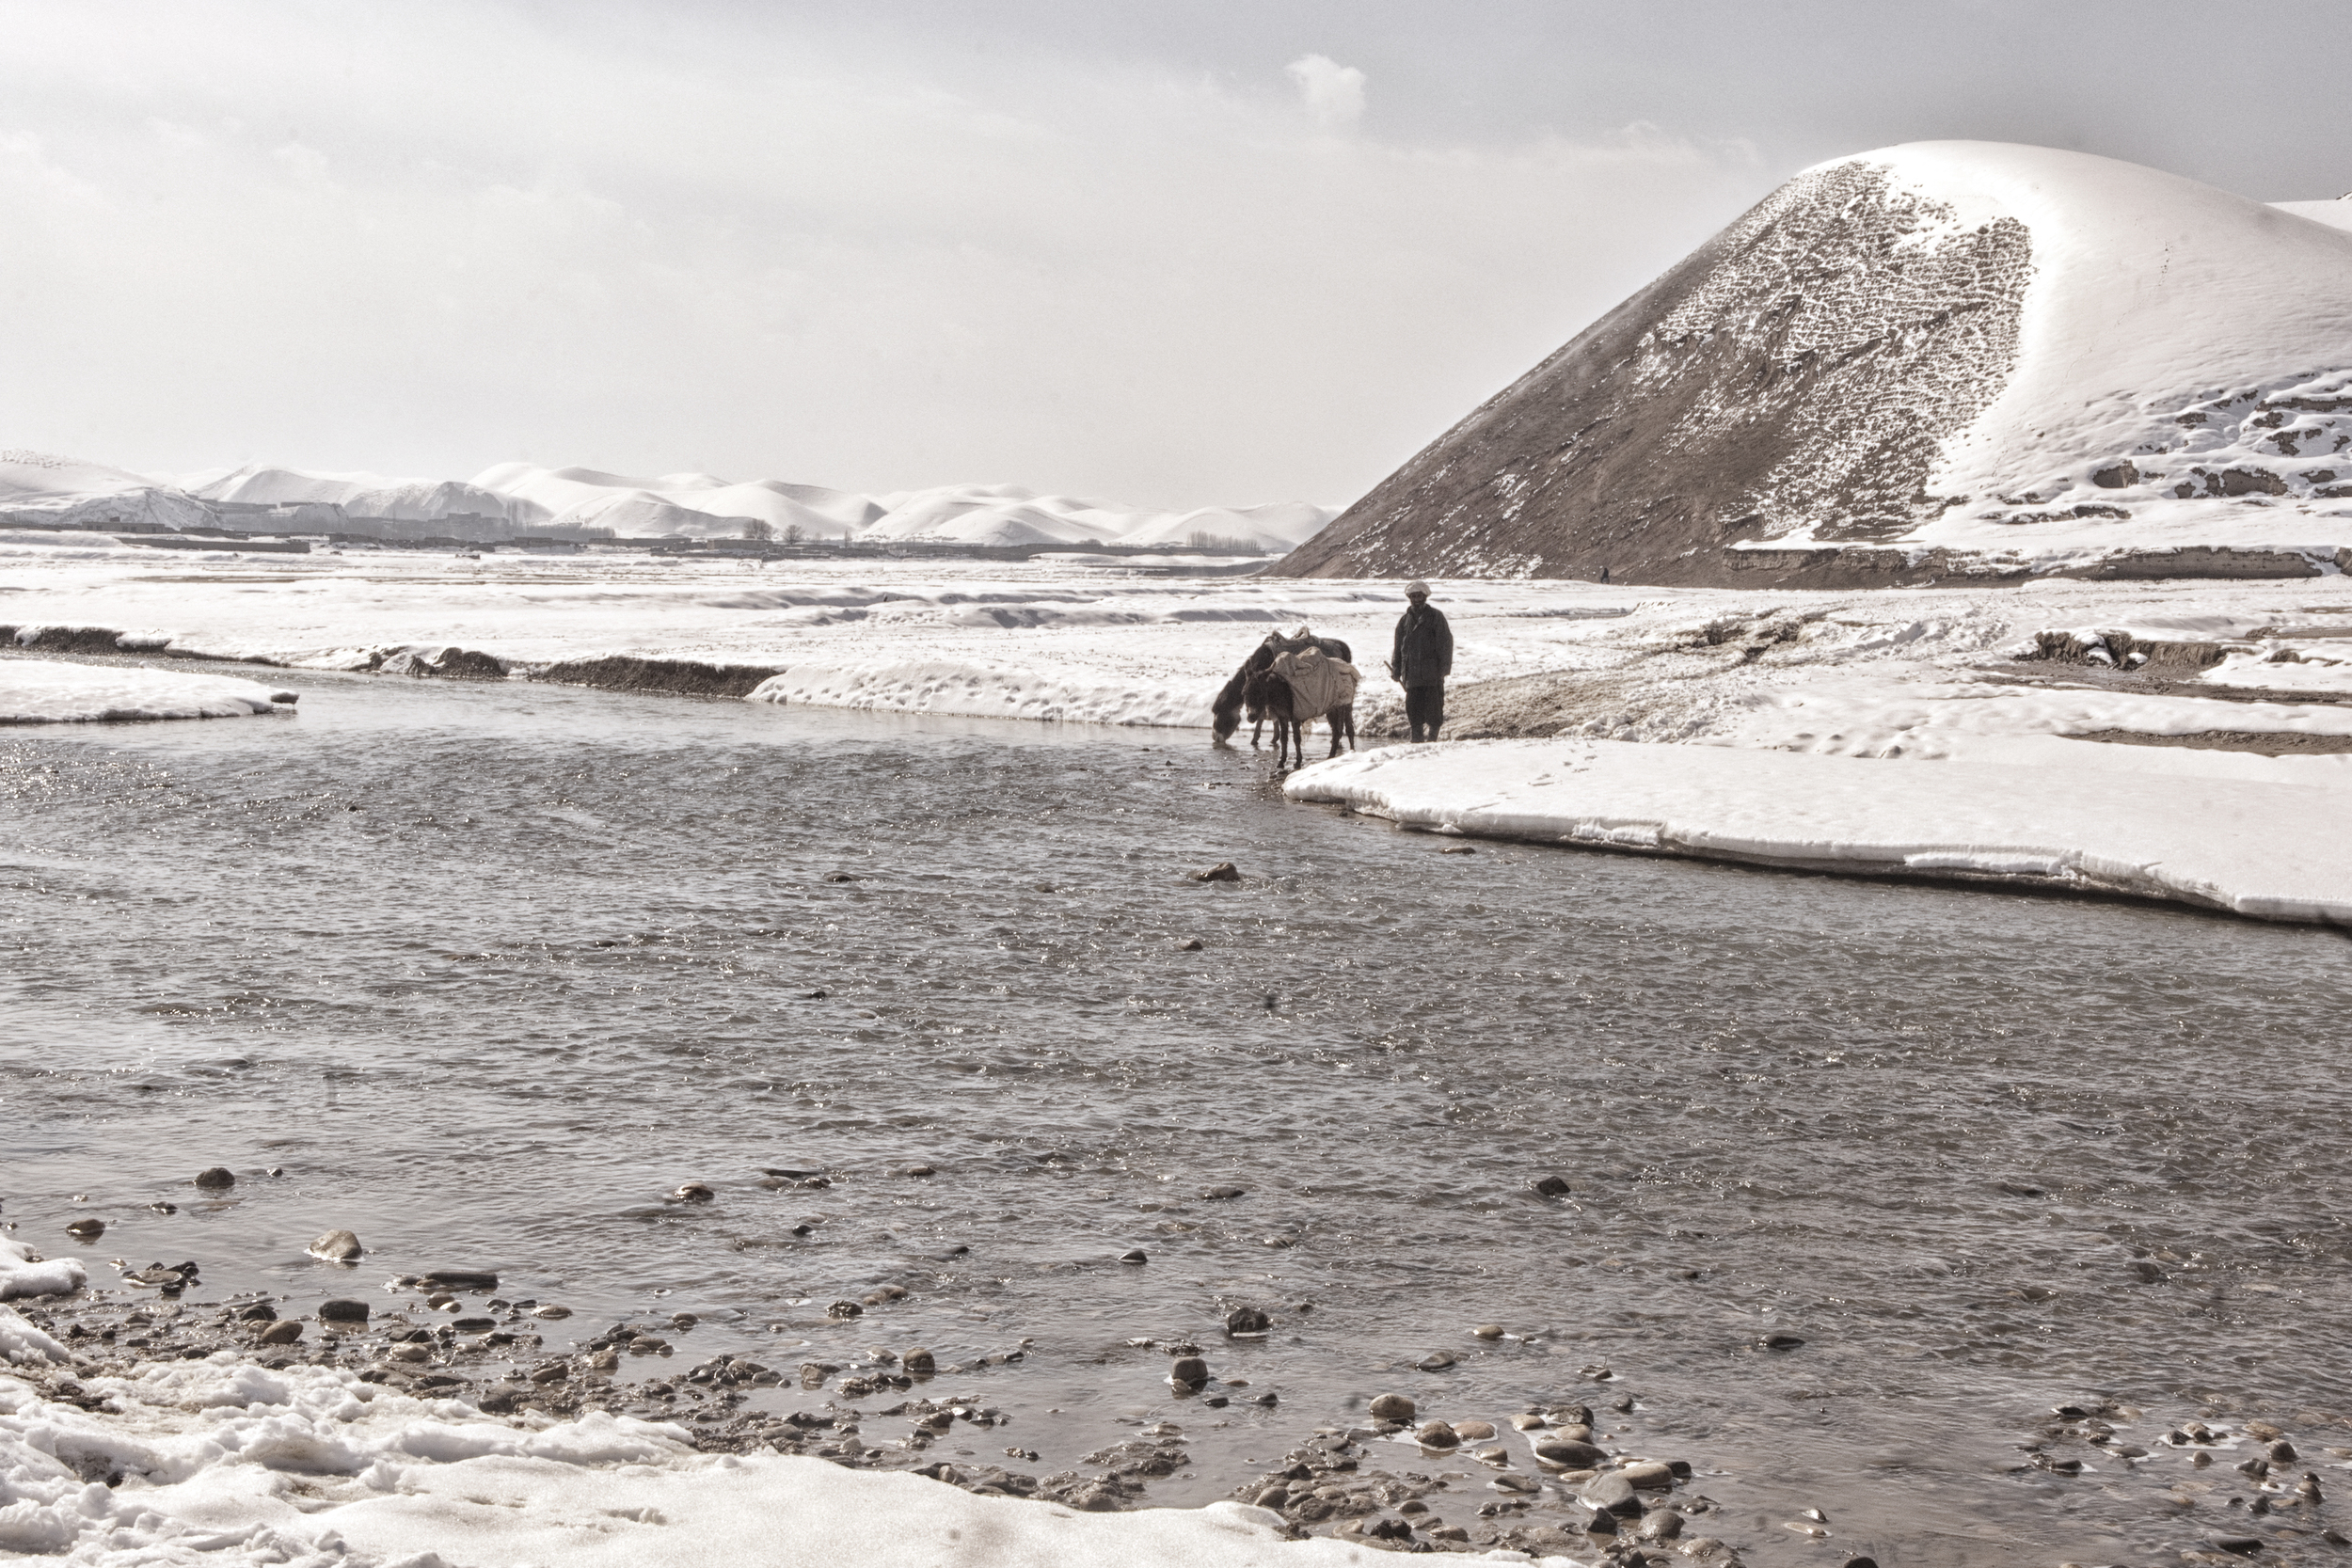 Nearly half the villages in western Afghanistan had been cut off from the major cities due to heavy snowfall, the cold snap hit the agricultural and livestock industry hard with more than 130,000 cattle perishing in the freezing temperatures Faryab Province, Afghanistan, February 18, 2008. (Photo/Mark Pearson)